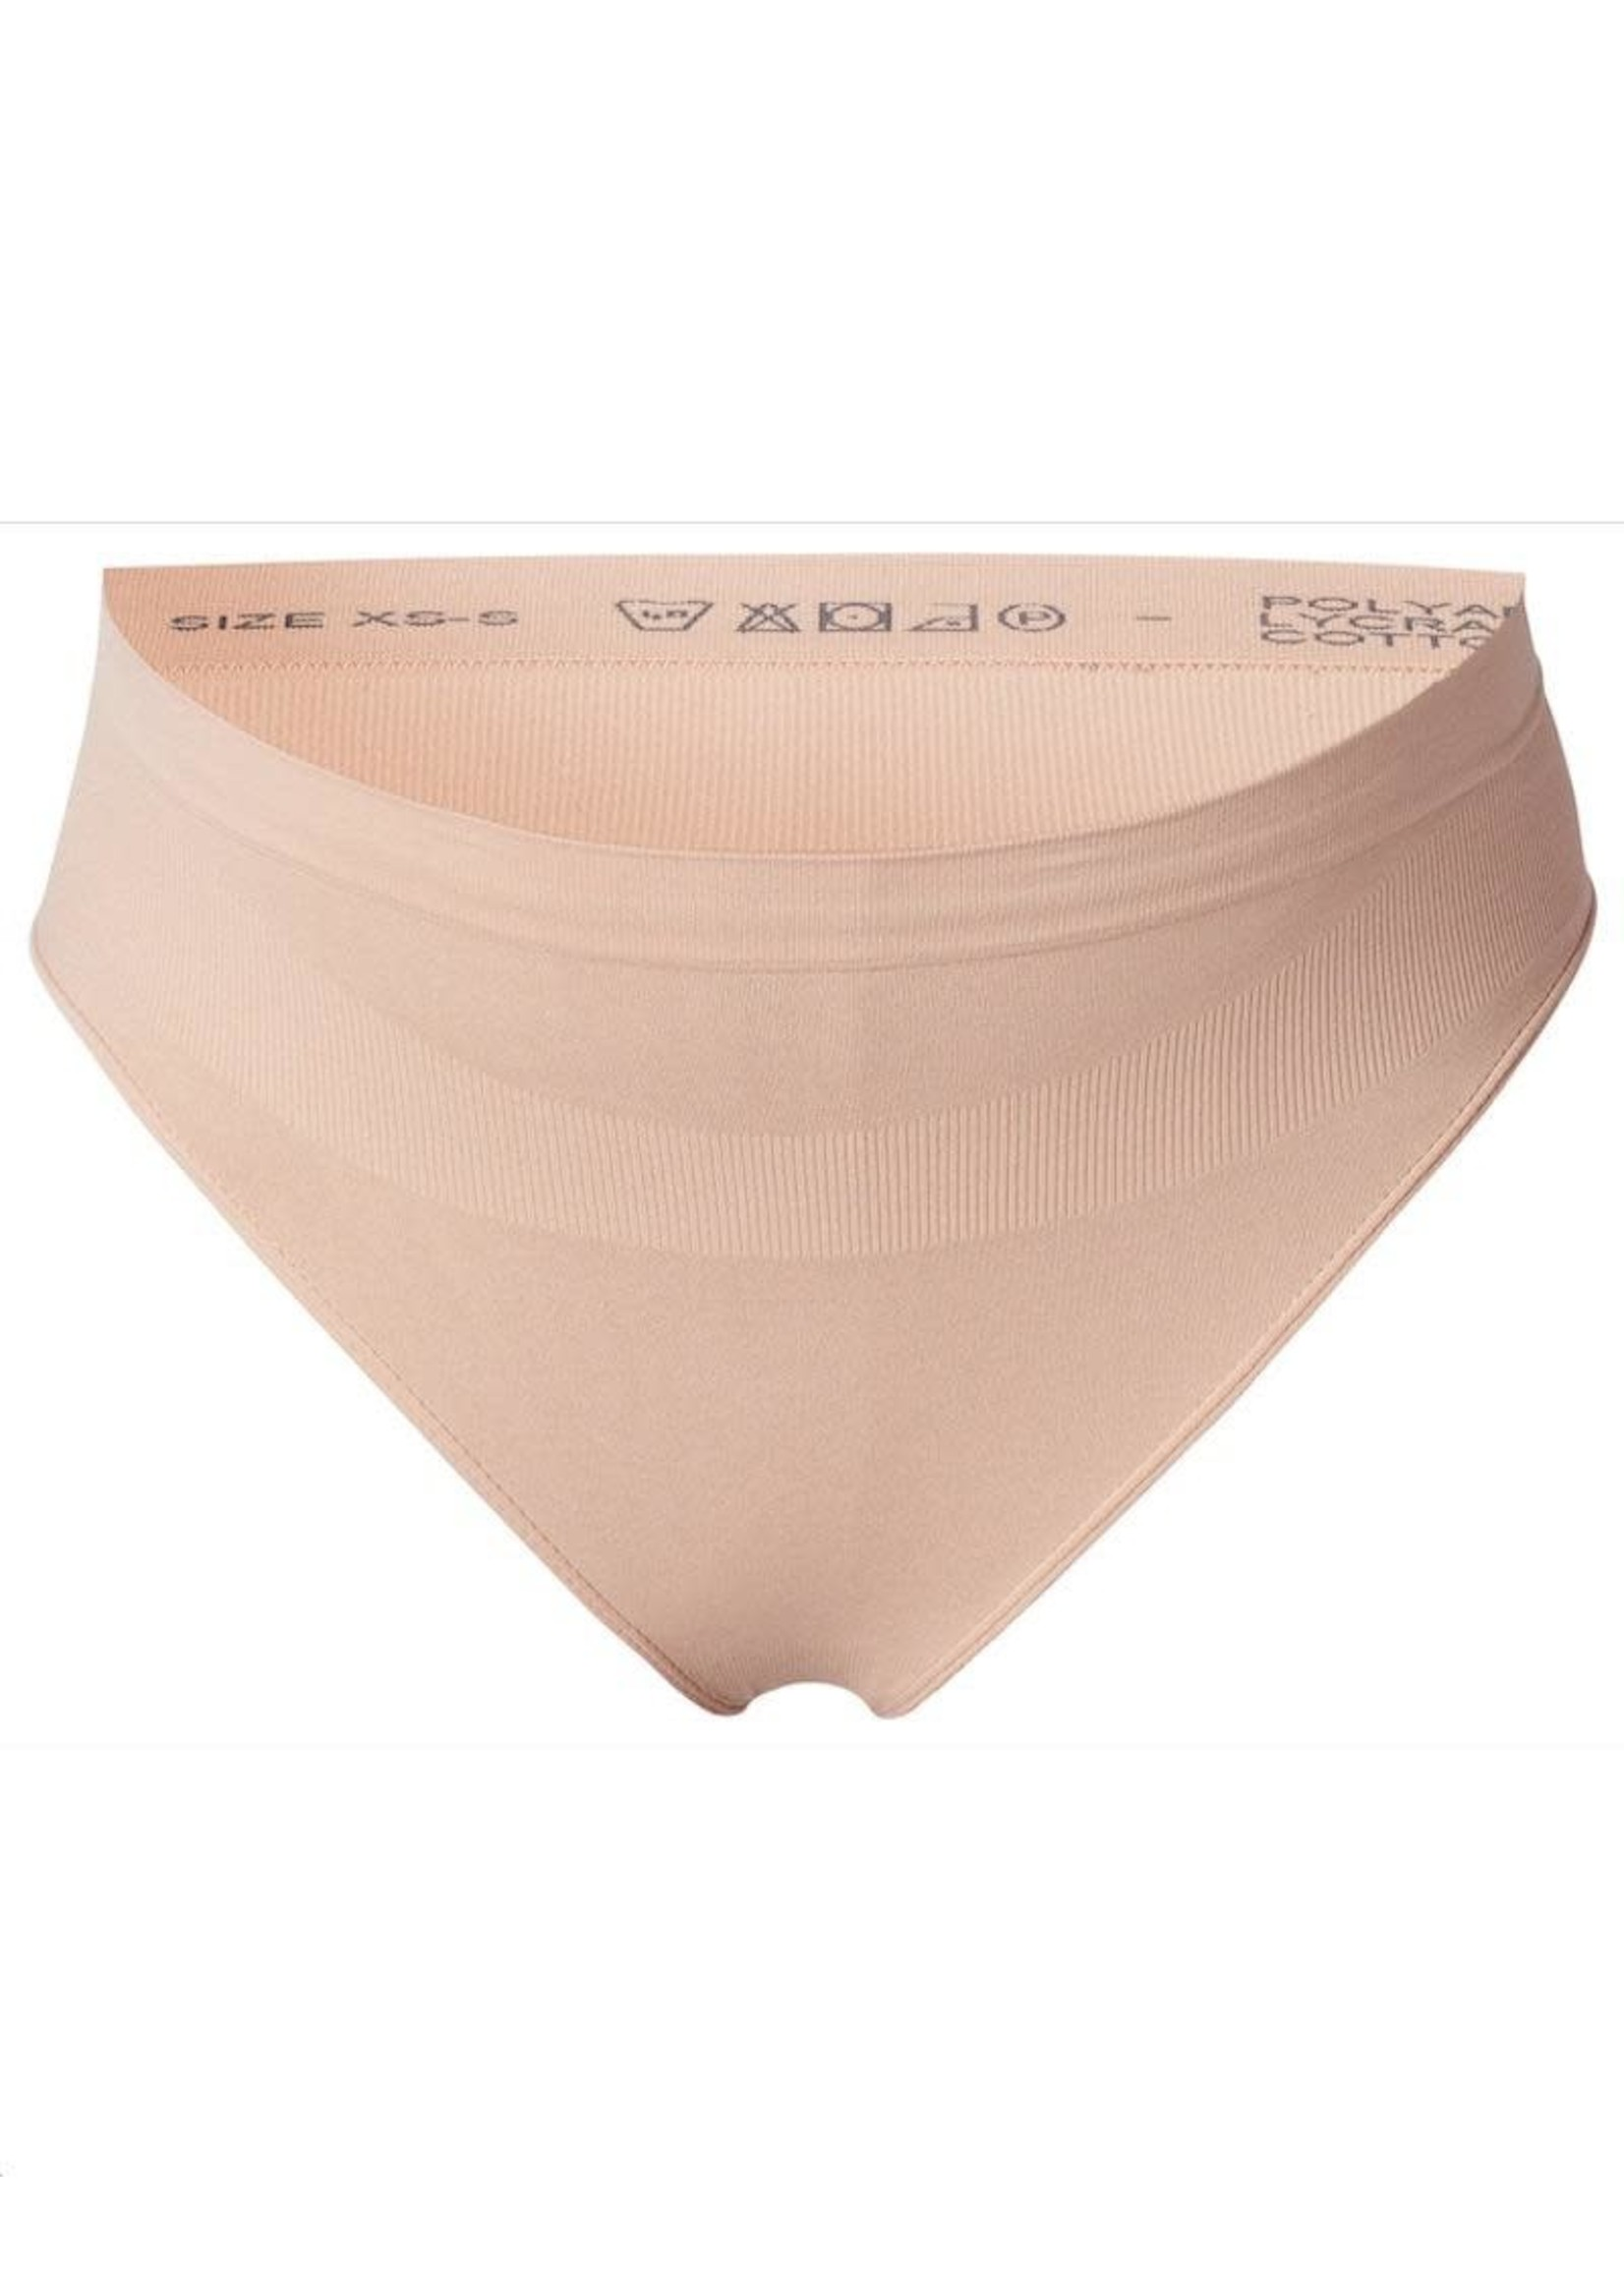 Noppies Maternity Noppies Maternity, Seamless String Under the Bump Underwear